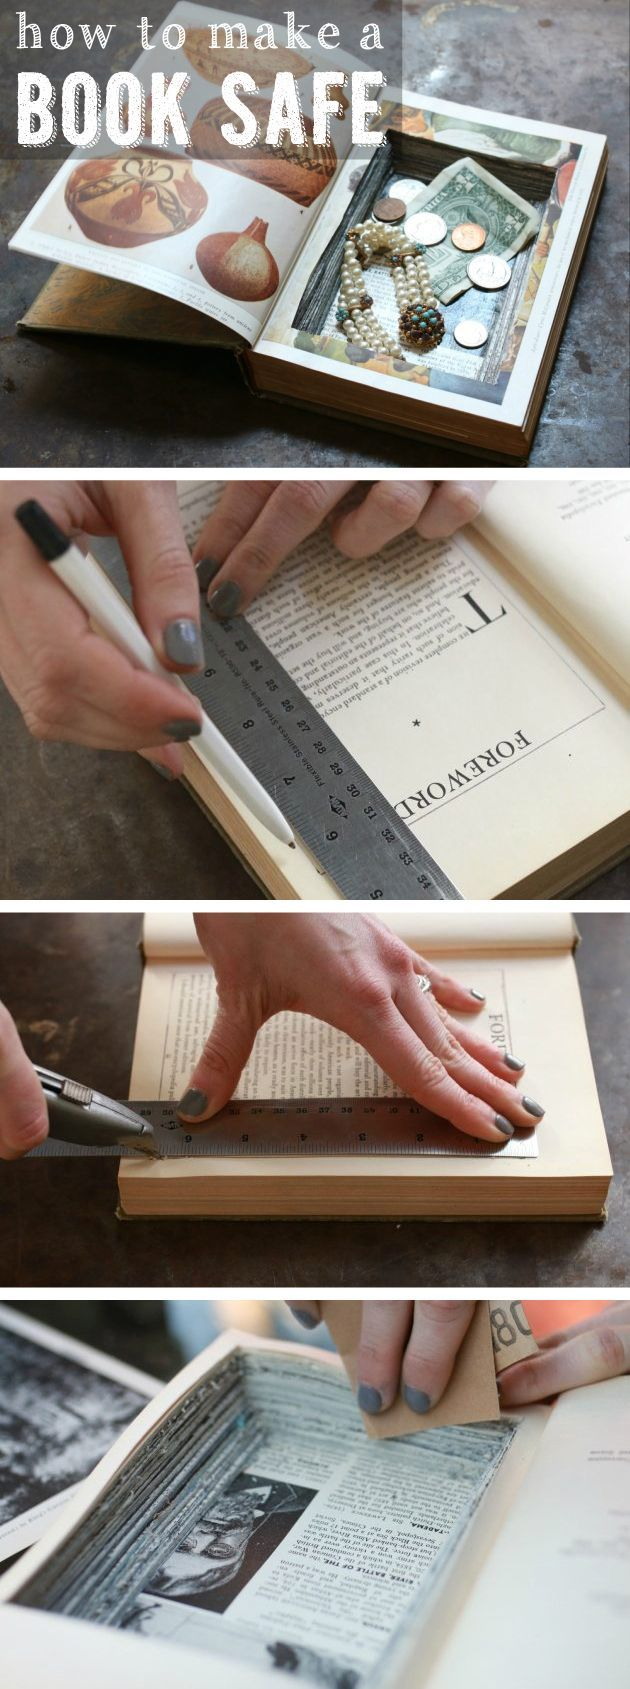 Yes! A book safe is such a fun project and adds a whole other level of cool to your bookcase. Keep all your trinkets and valuables out, in plain sight without anyone knowing they are there! DIY instructions here: www.ehow.com/...